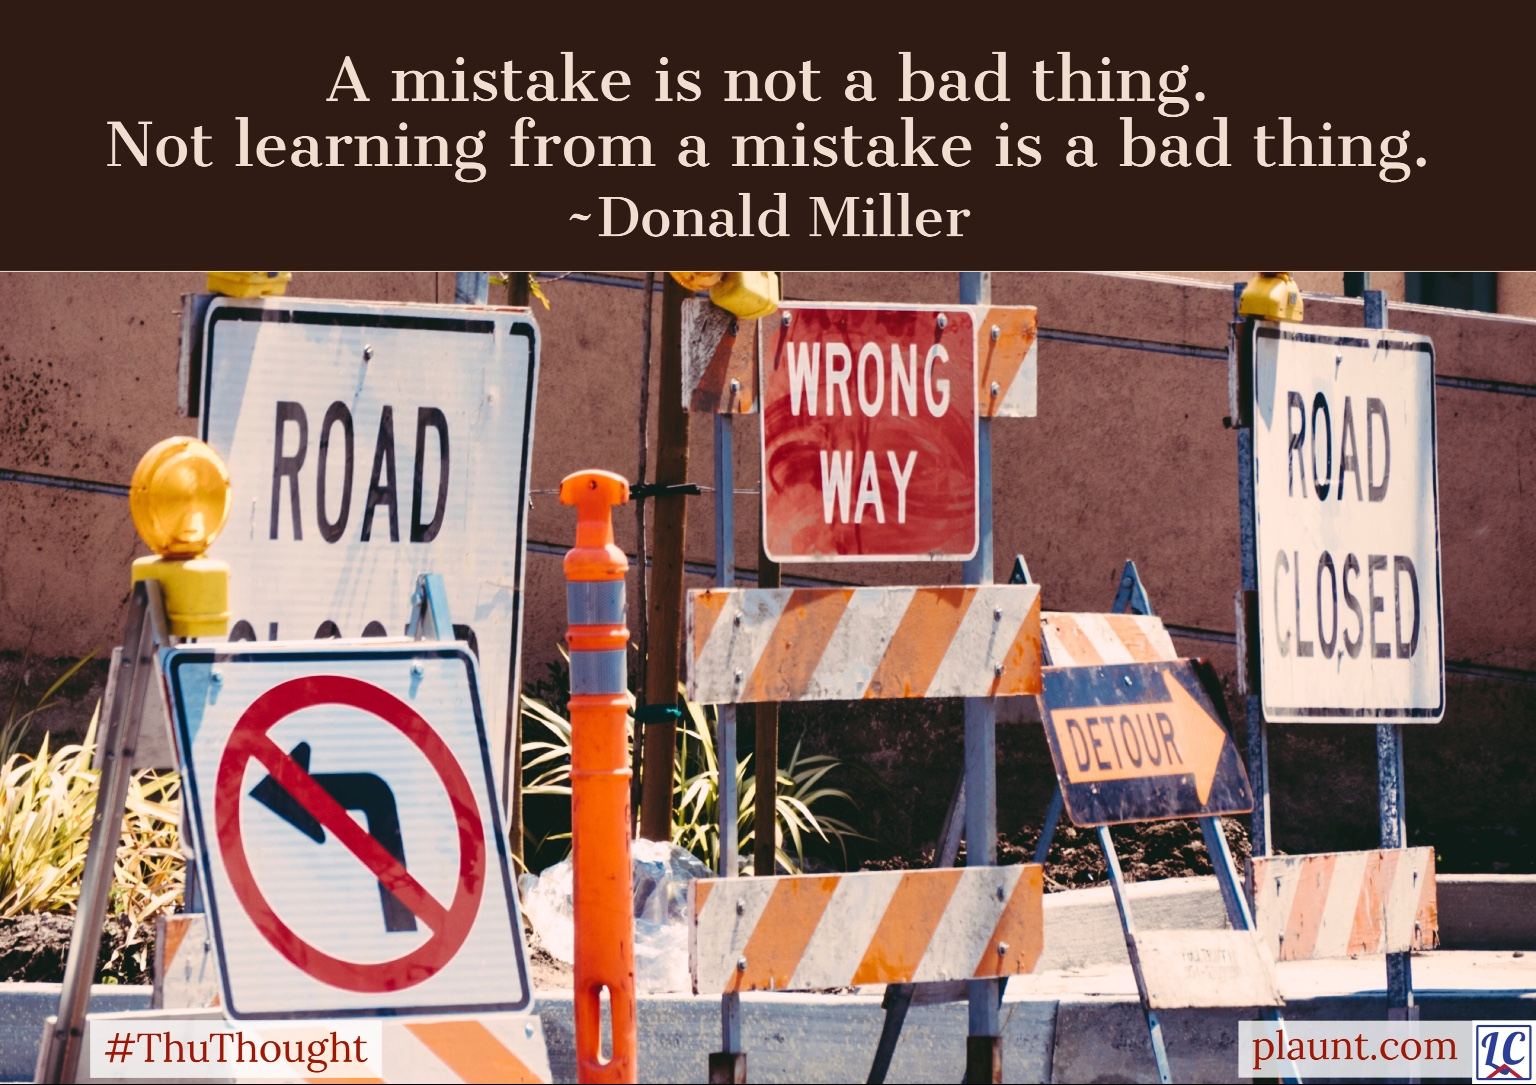 Several construction signs that say Wrong Way, No Left Turn, Road Closed, and Detour. Caption: A mistake is not a bad thing. Not learning from a mistake is a bad thing. ~Donald Miller